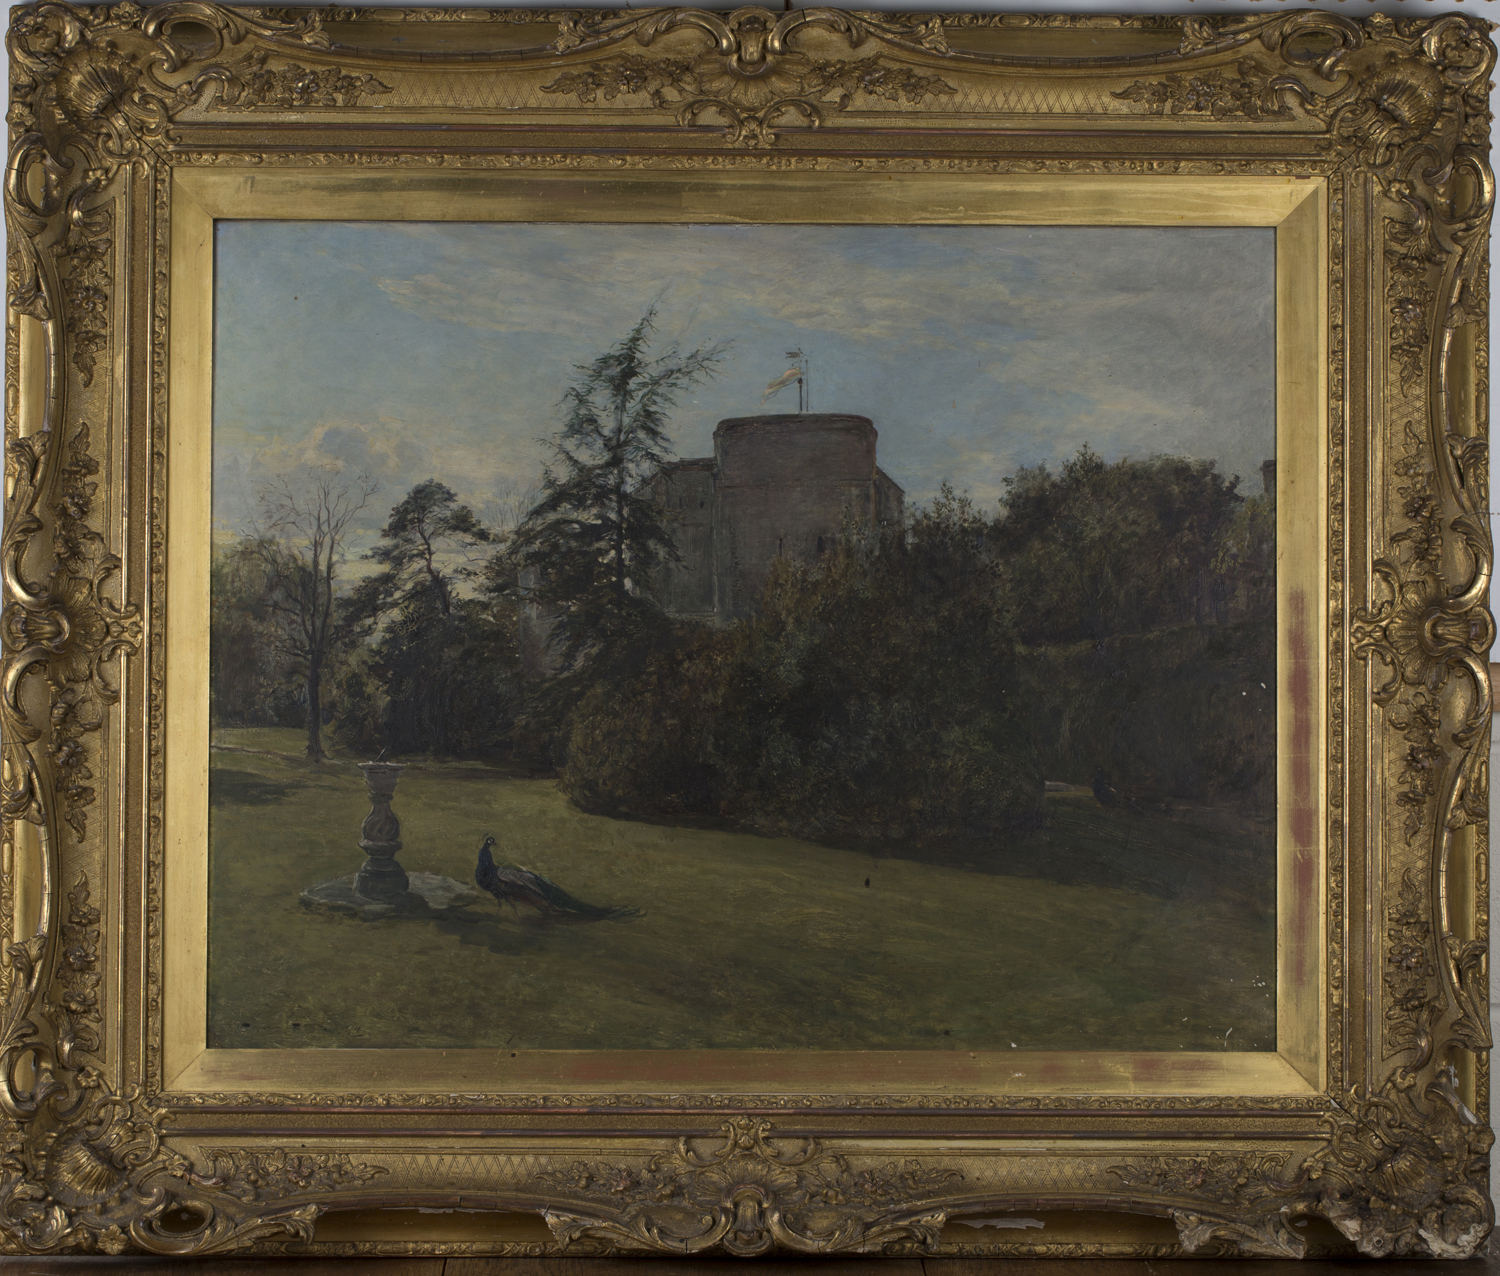 Lot 38 - Heywood Hardy - Peacocks in a Garden, a Tower beyond, oil on canvas, signed and dated 1914, 70cm x